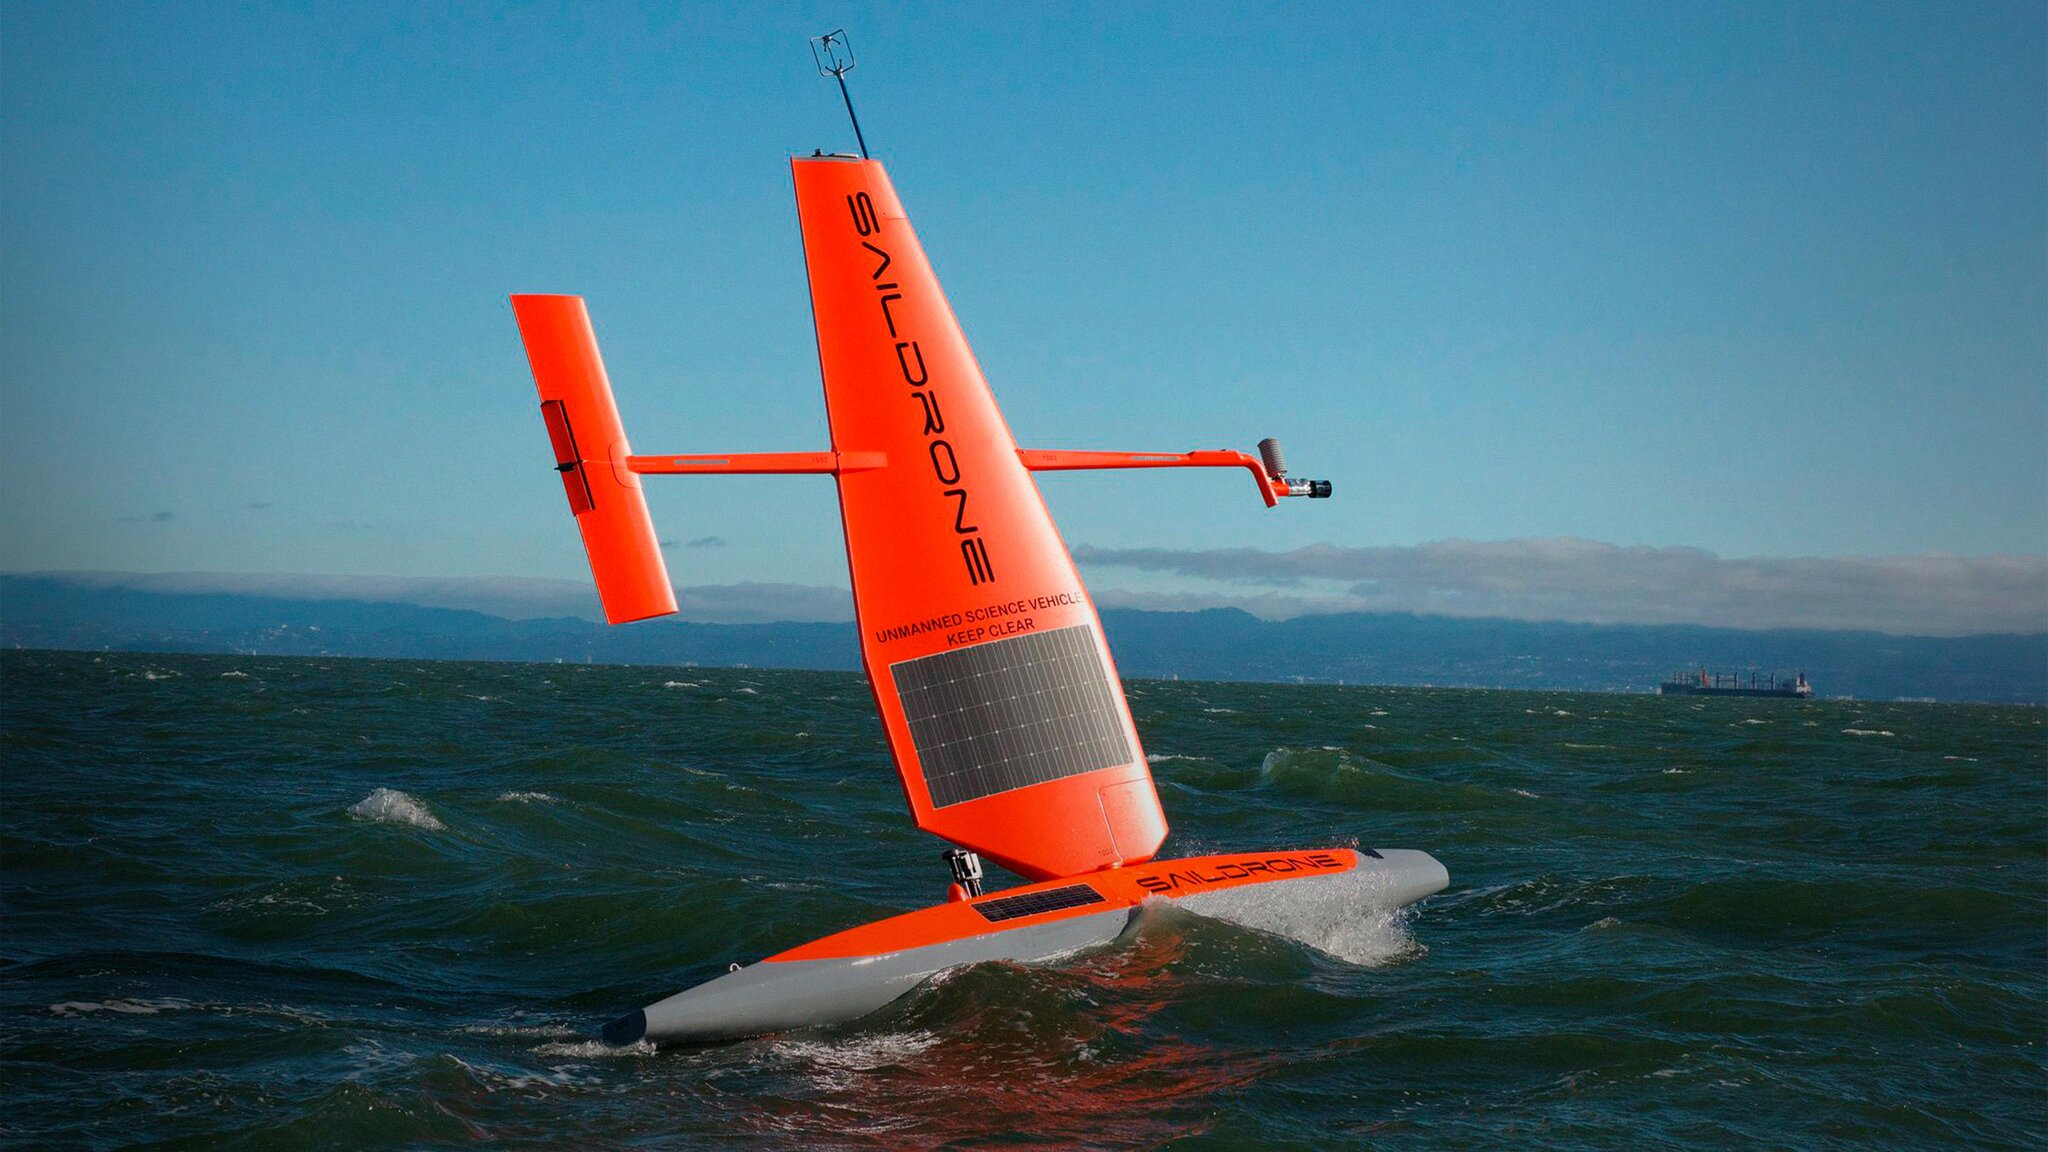 How a fleet of wind-powered drones is changing our understanding of the ocean: https://t.co/hzdzJEbDvt https://t.co/AwEfTRESpo